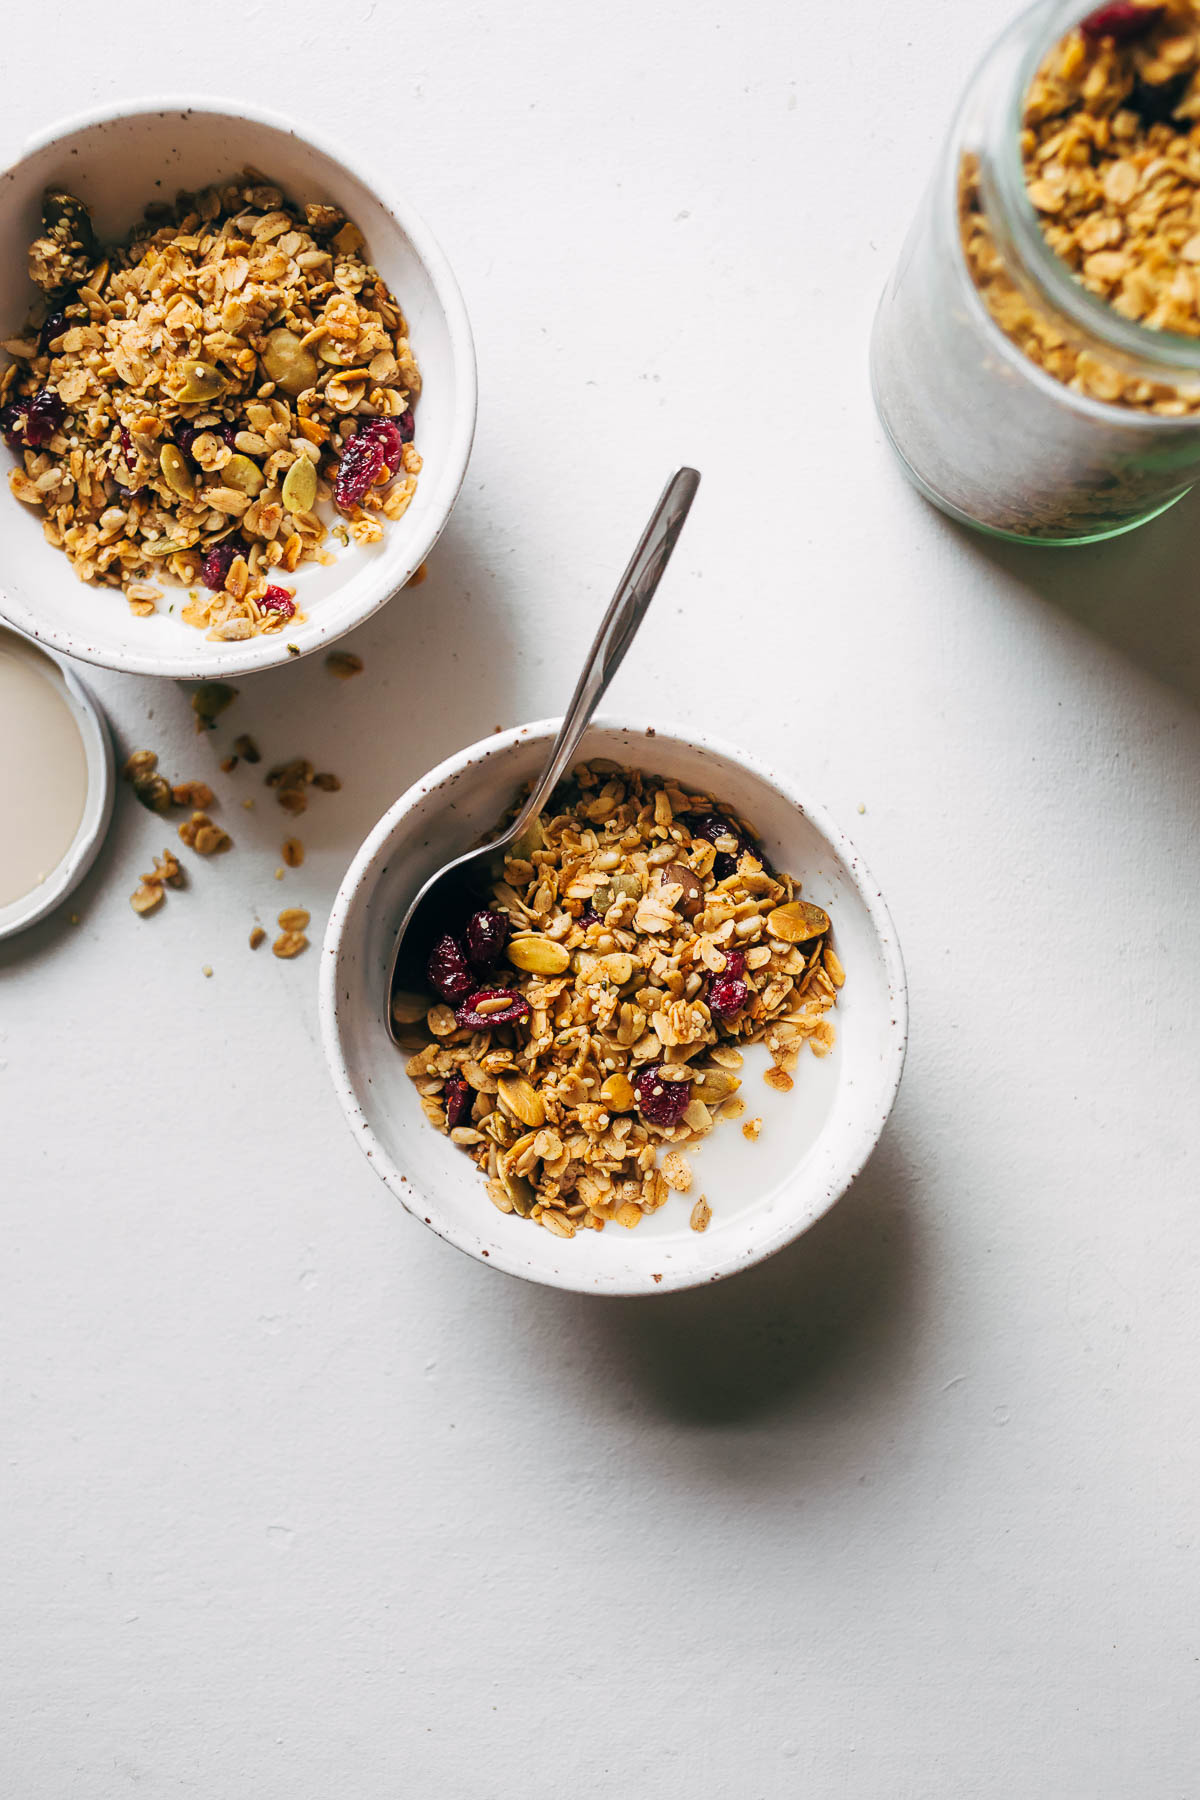 Two servings of granola in bowls on a white surface.